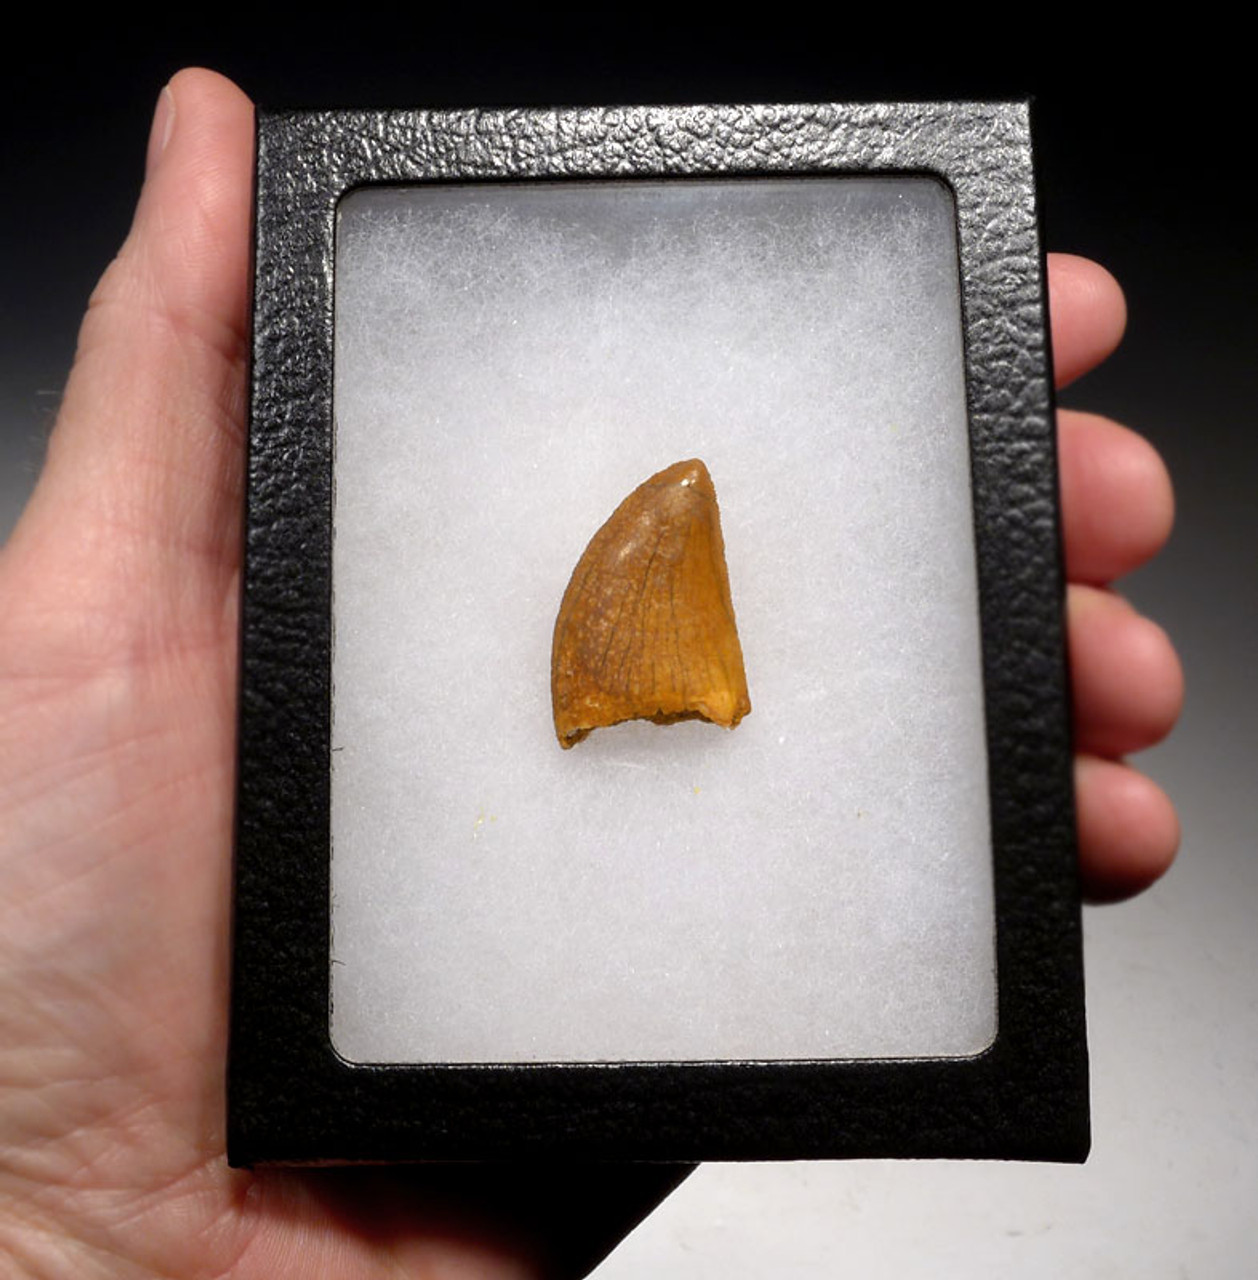 DT2-080 - UNBROKEN CARCHARODONTOSAURUS FOSSIL TOOTH FROM THE LARGEST MEAT-EATING DINOSAUR